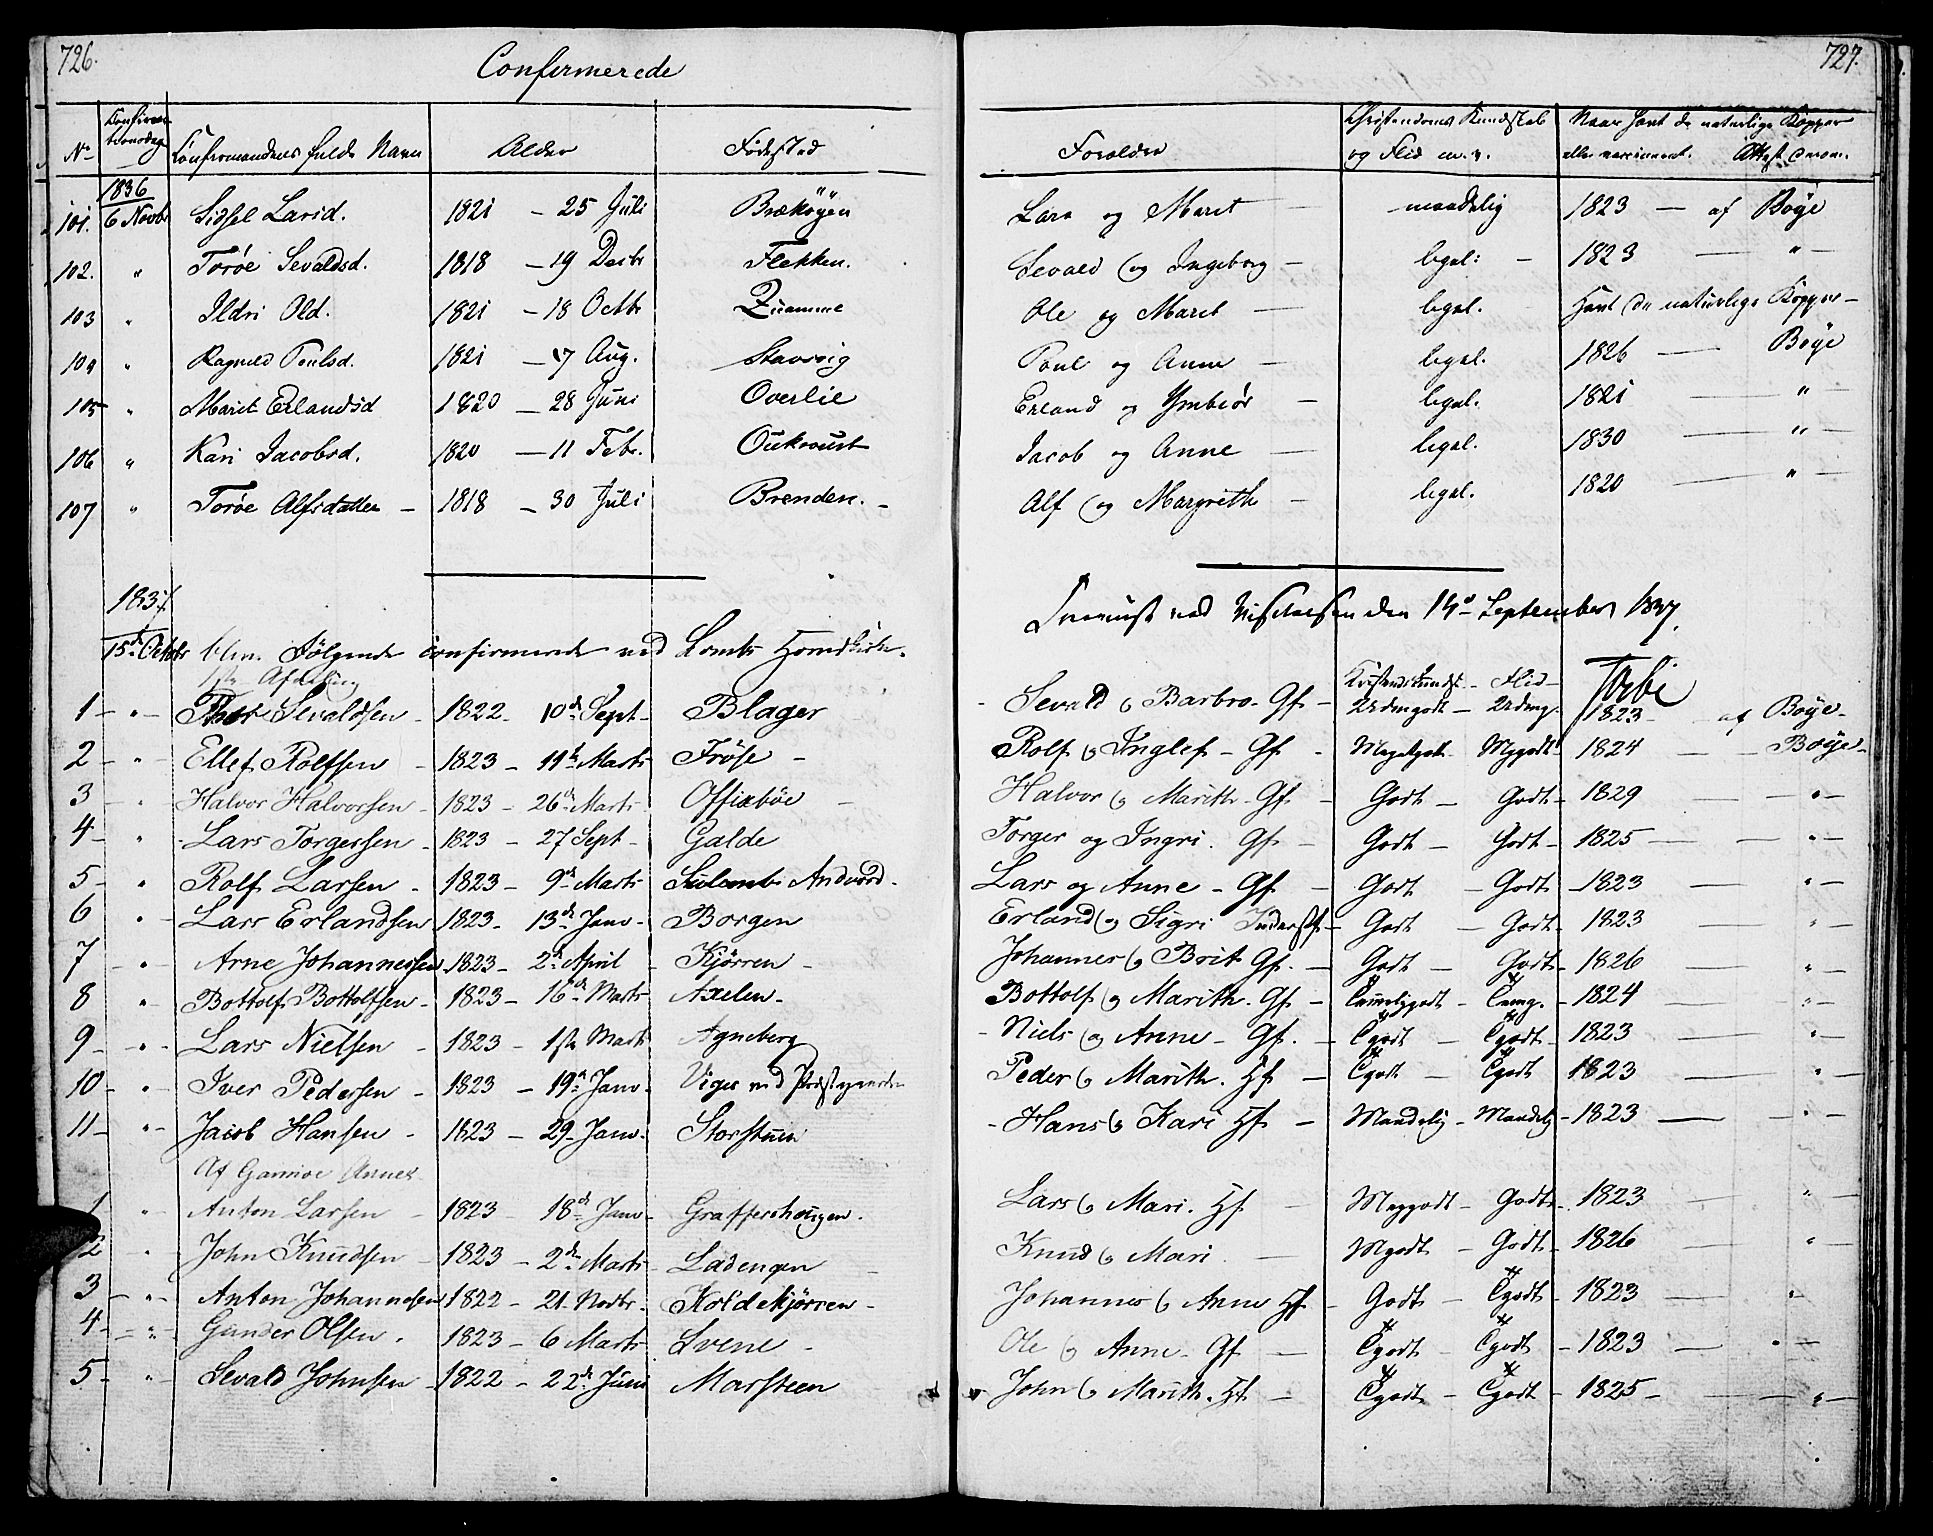 SAH, Lom prestekontor, K/L0005: Parish register (official) no. 5, 1825-1837, p. 726-727